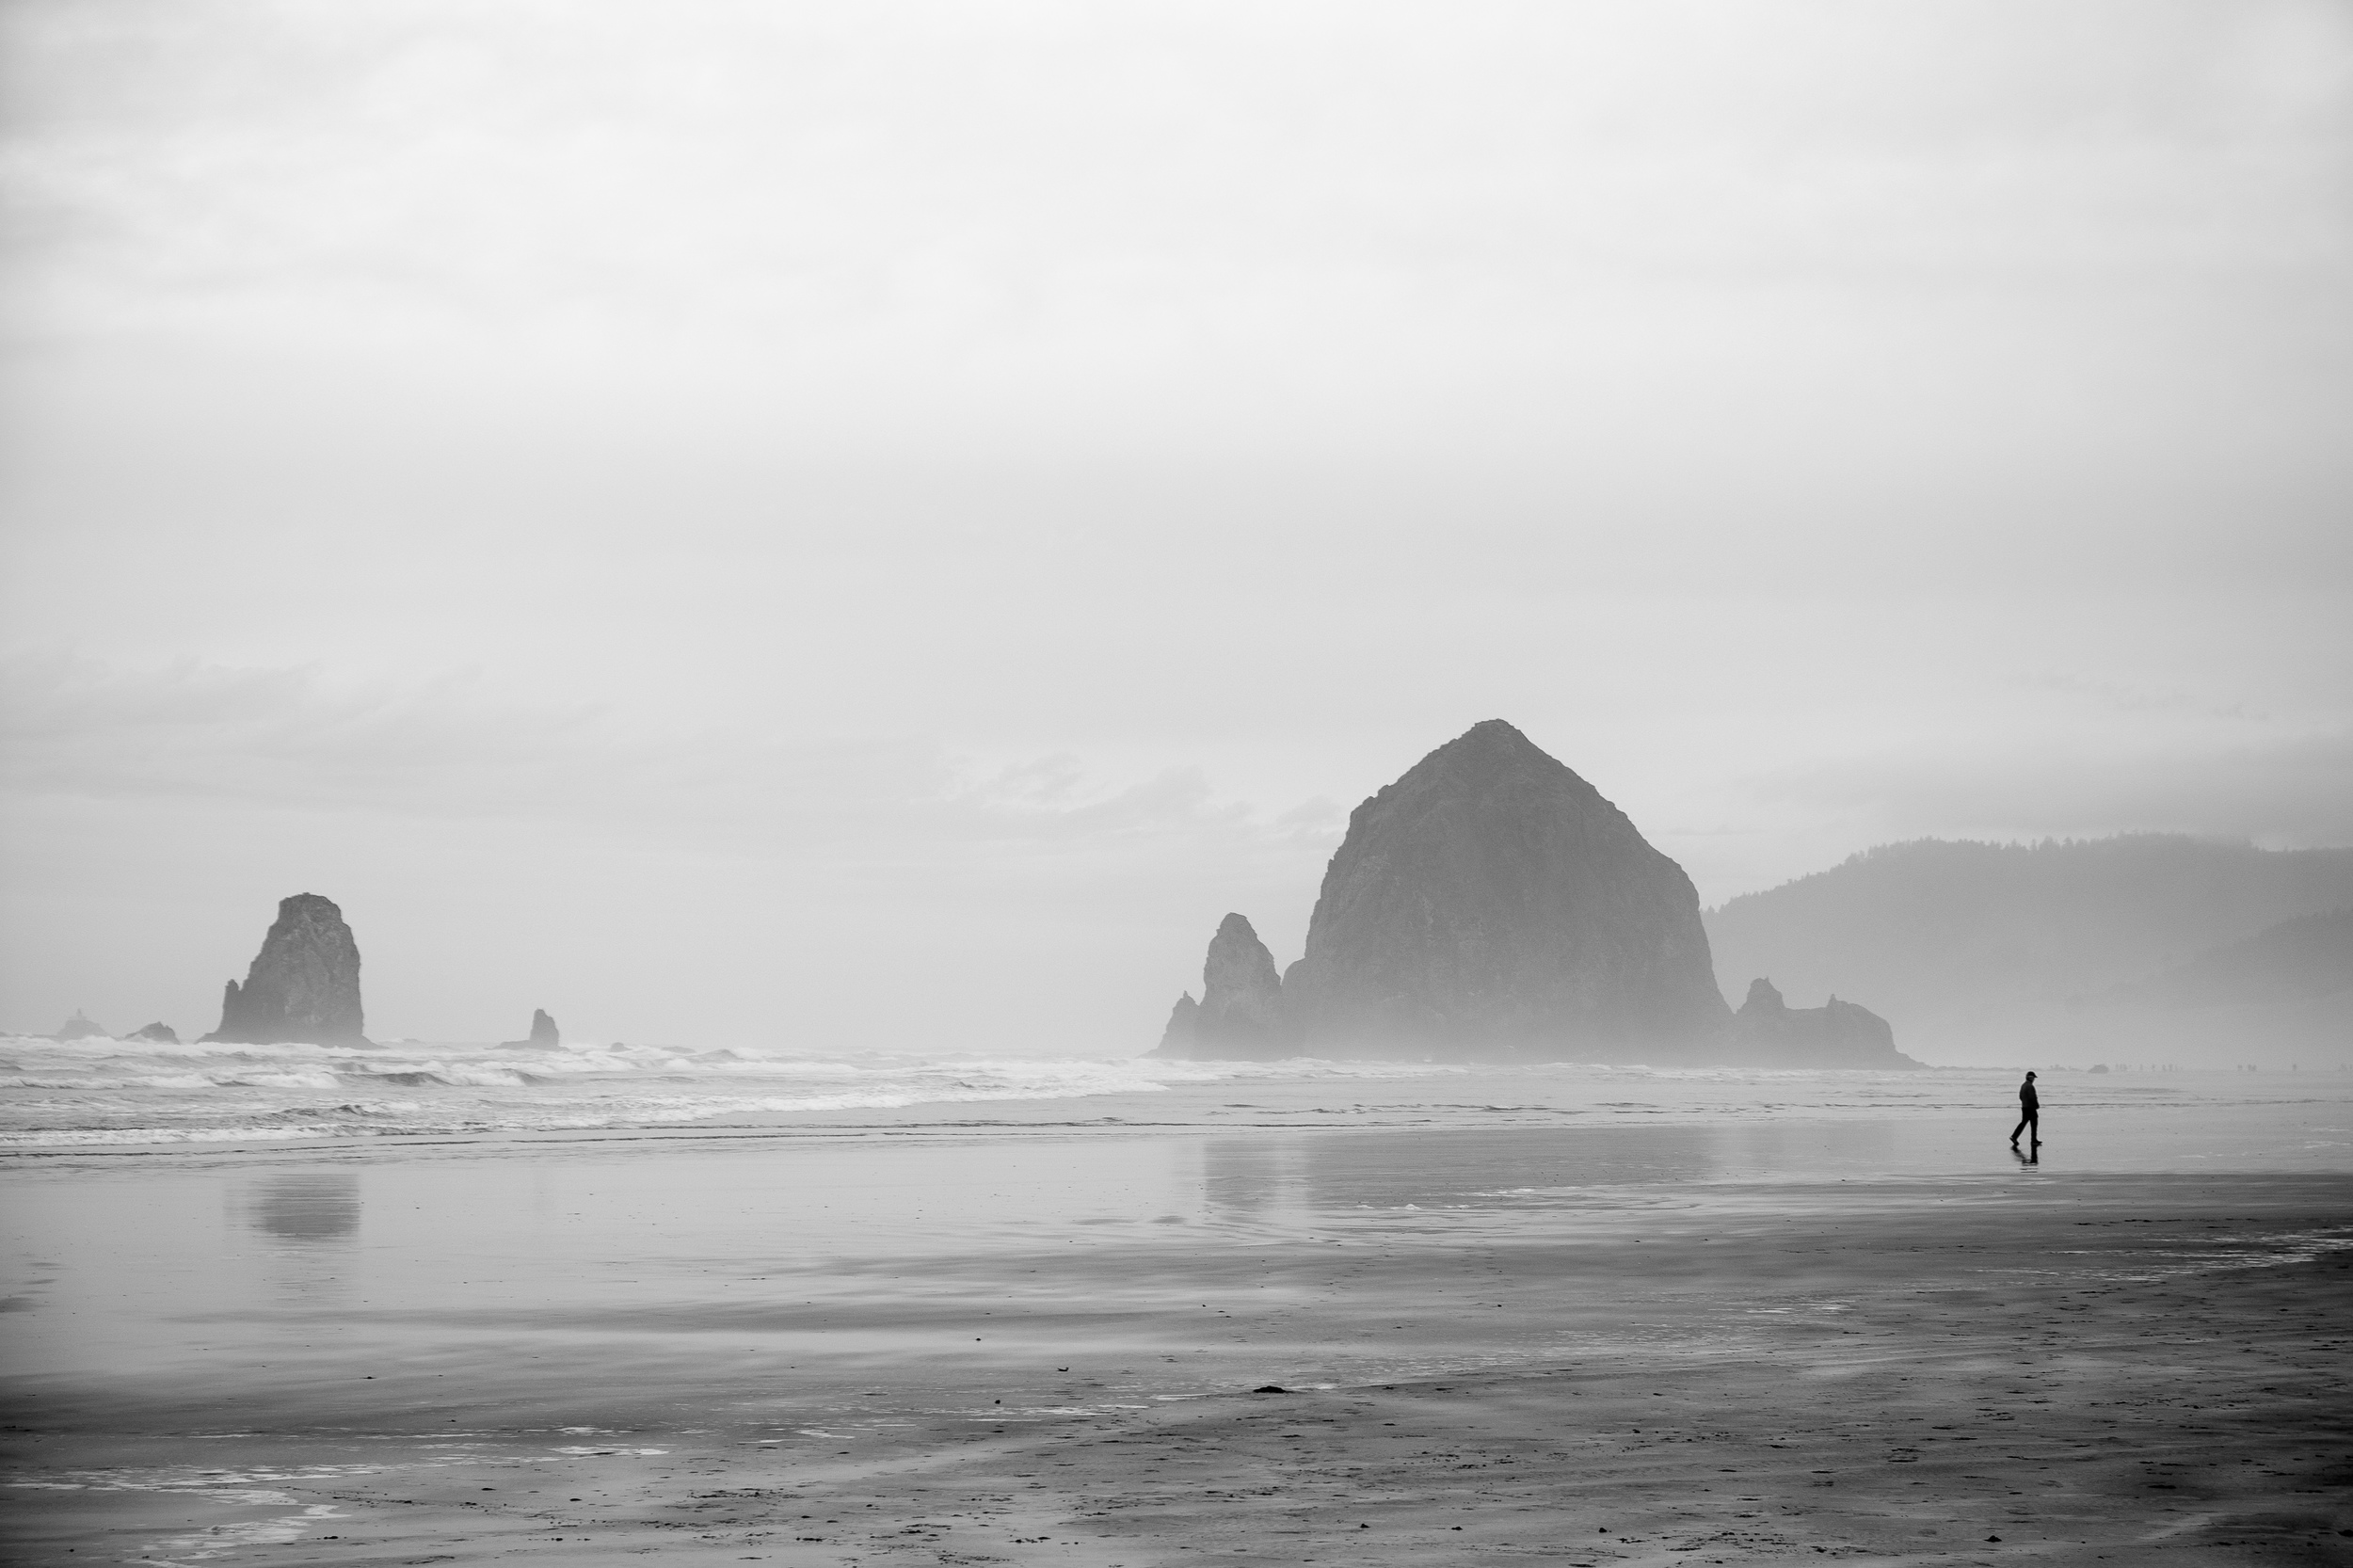 Haystack Rock, made famous by such movies as The Goonies.